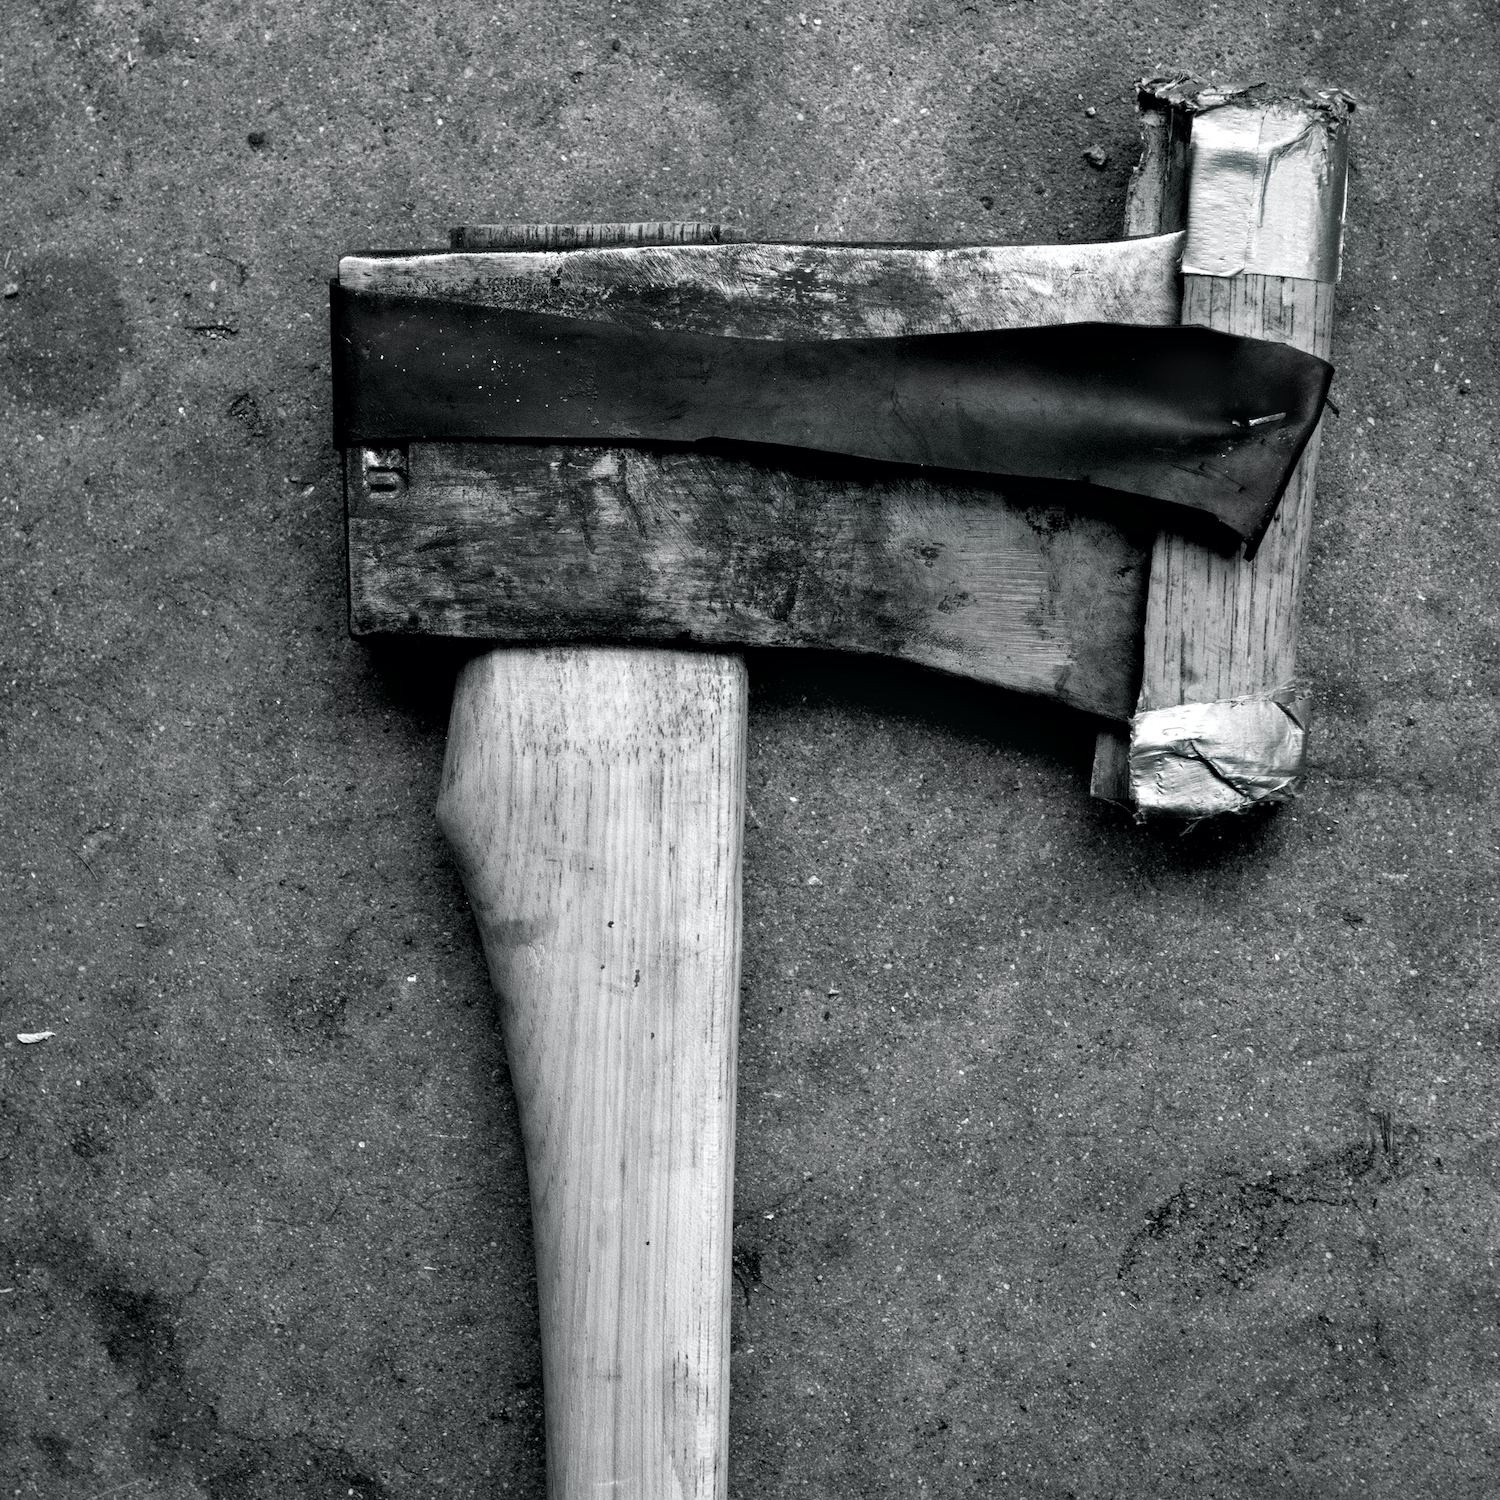 A black and white photo of a vintage axe on the ground